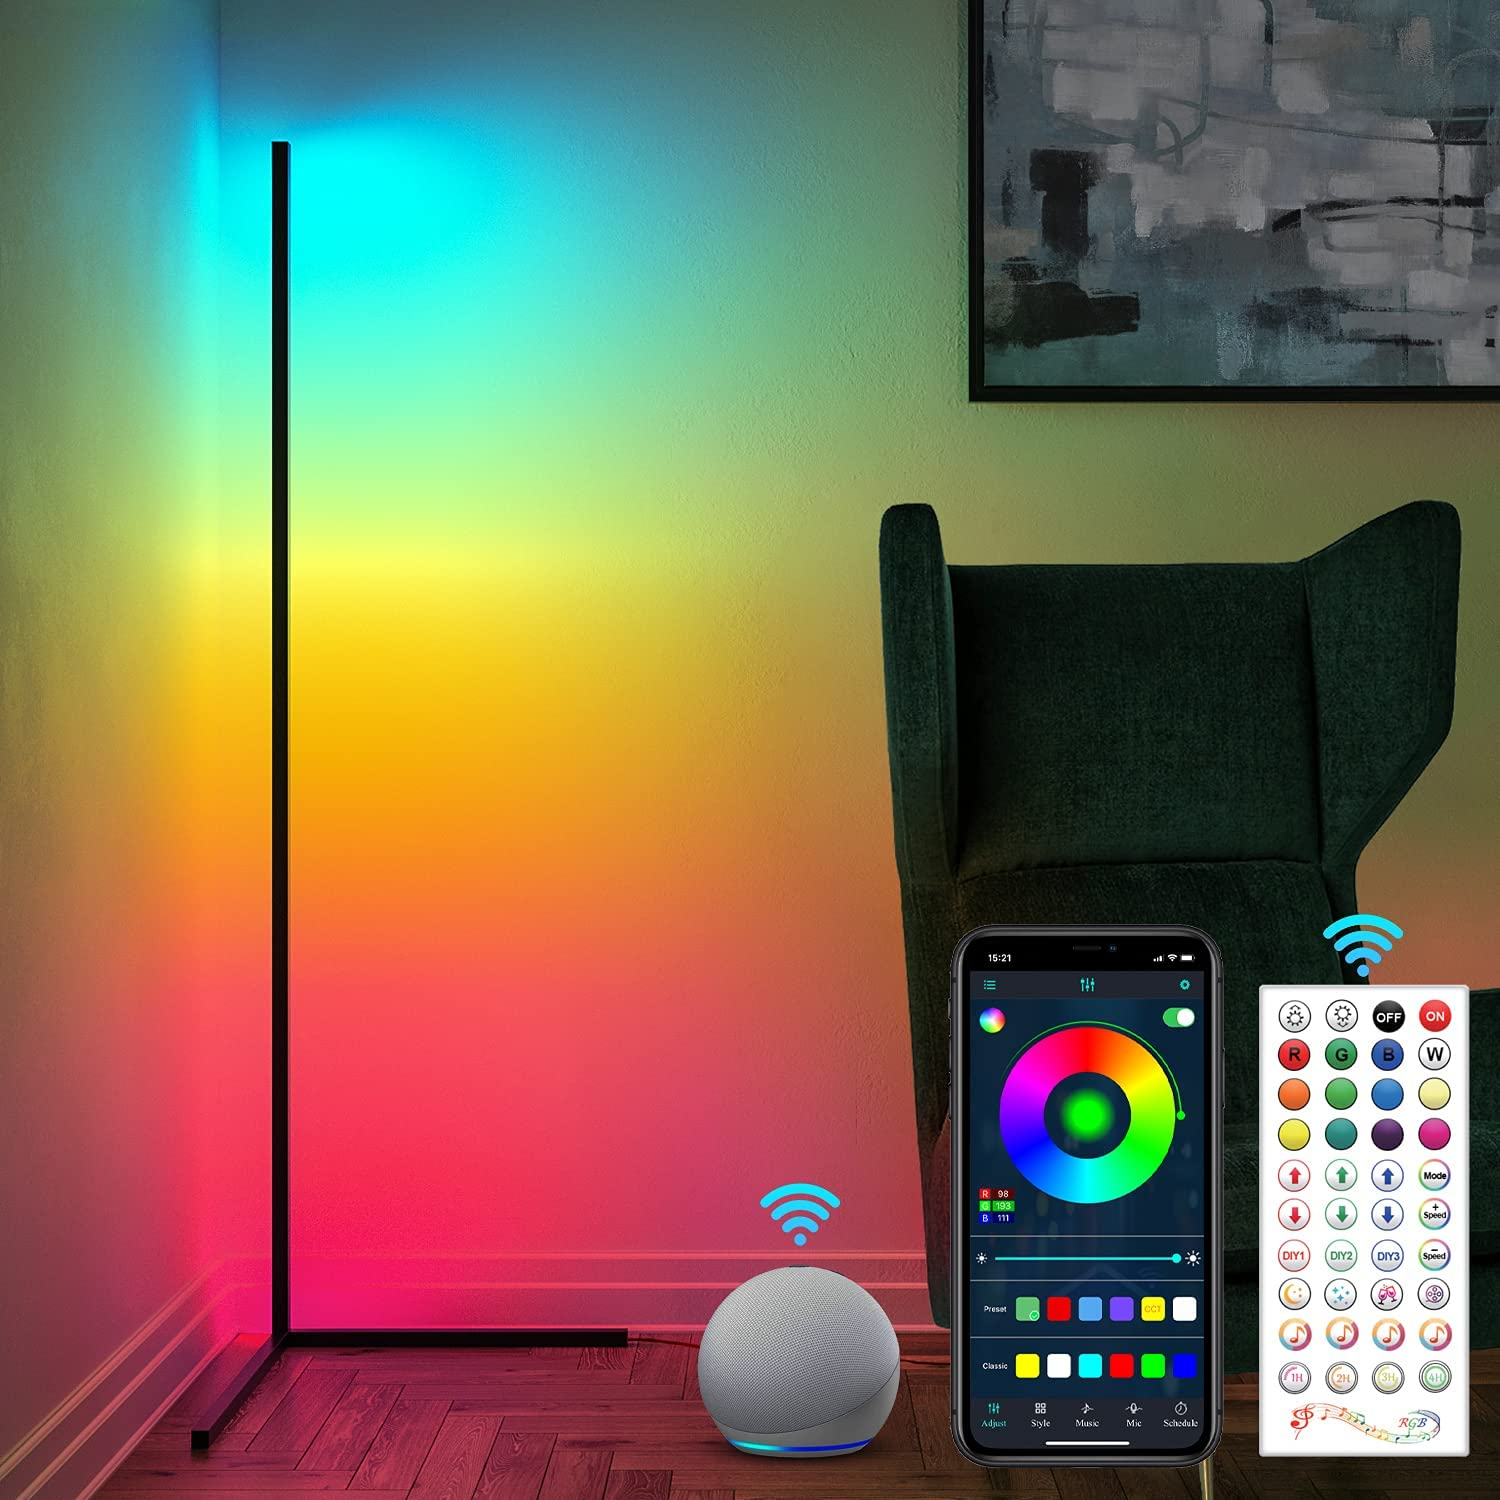 RGB Corner Lamp, Color Changing Floor Lamp for Bedroom, Works with Alexa, Google Home, Dimmable LED Corner Lamp, 61